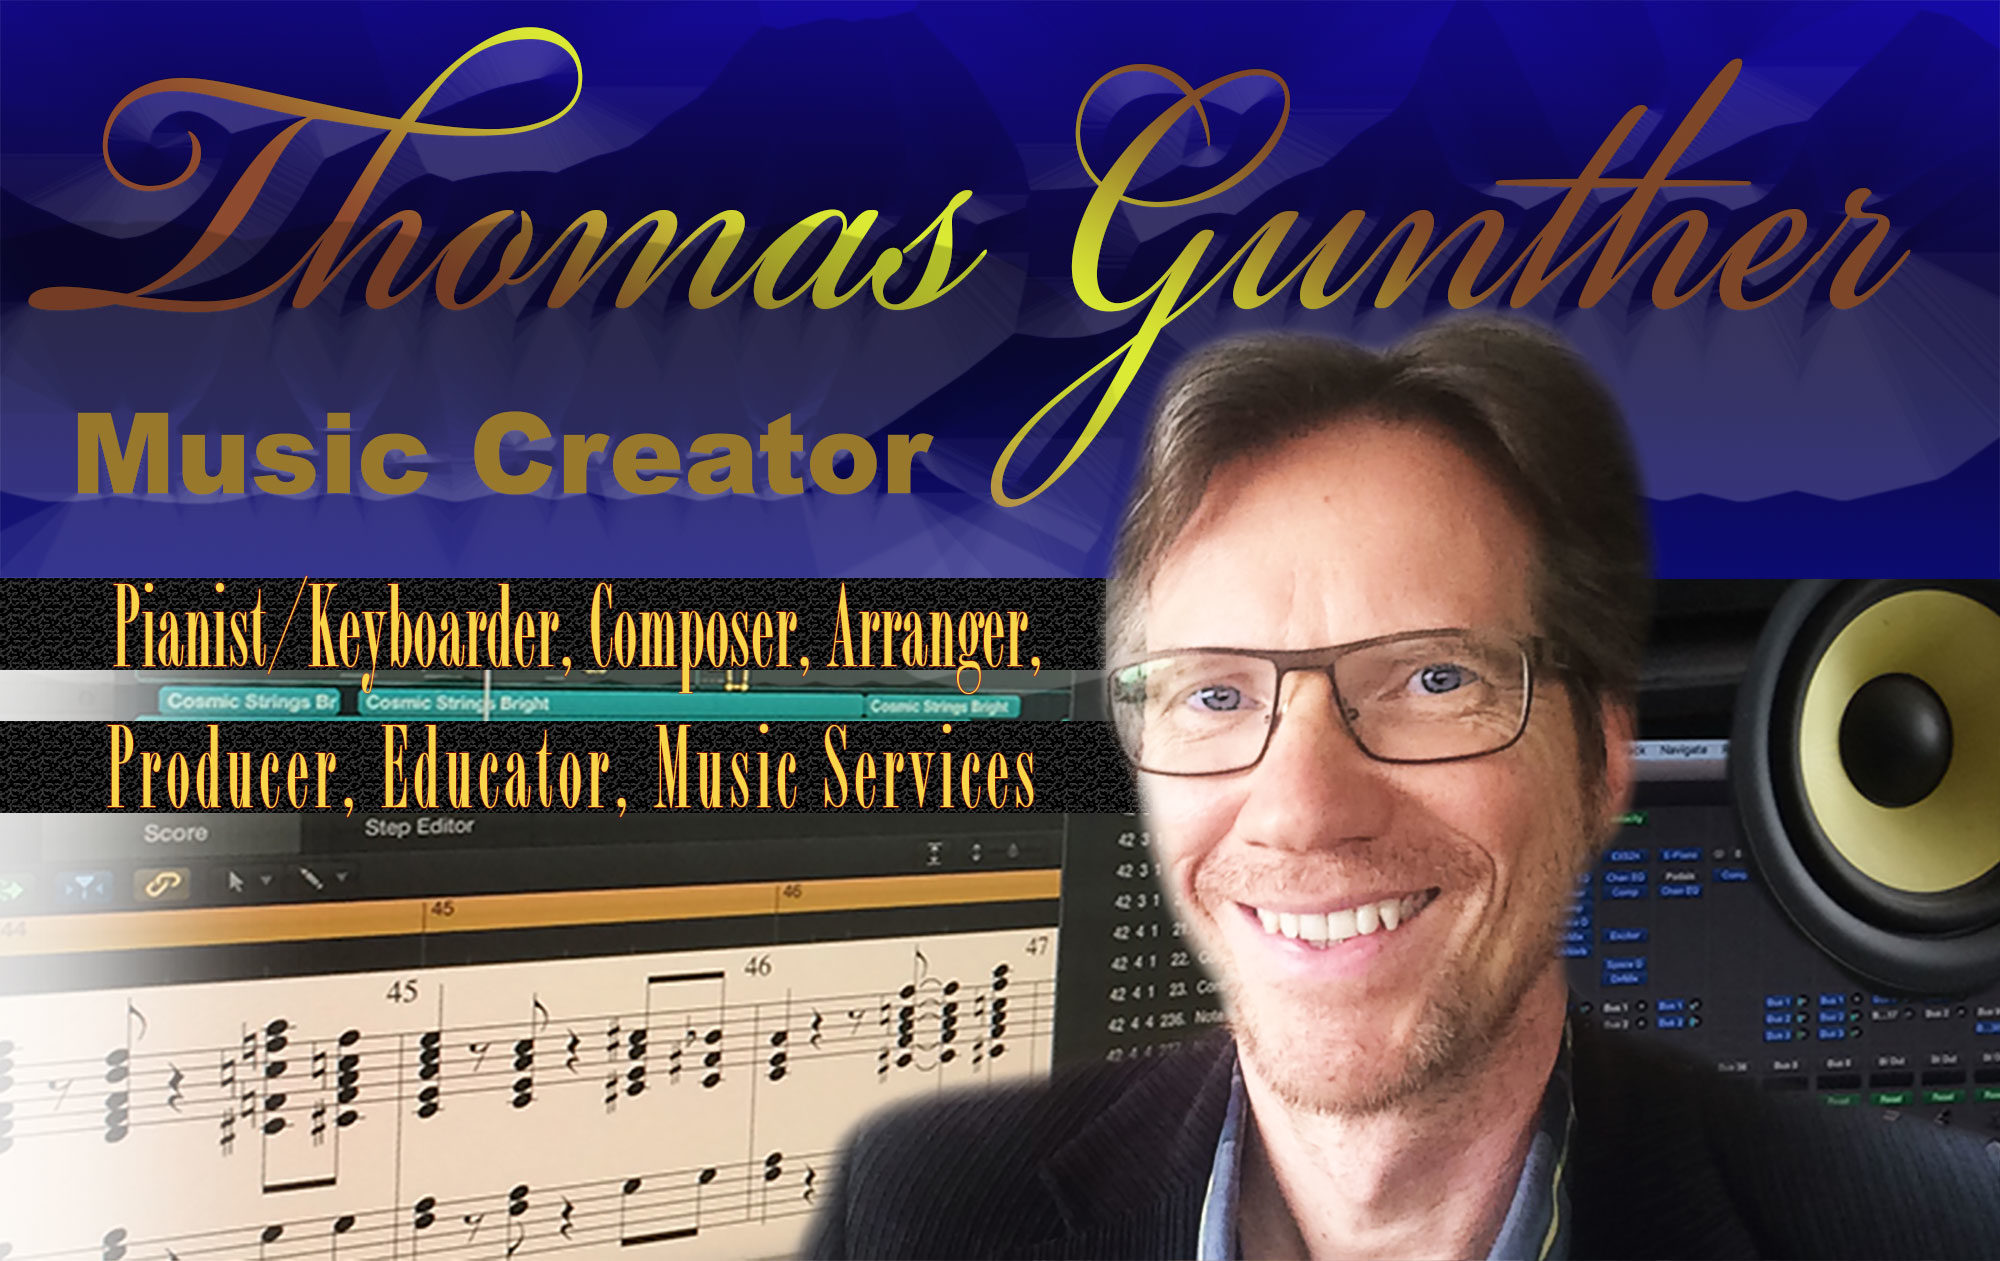 ThomasGunther.com